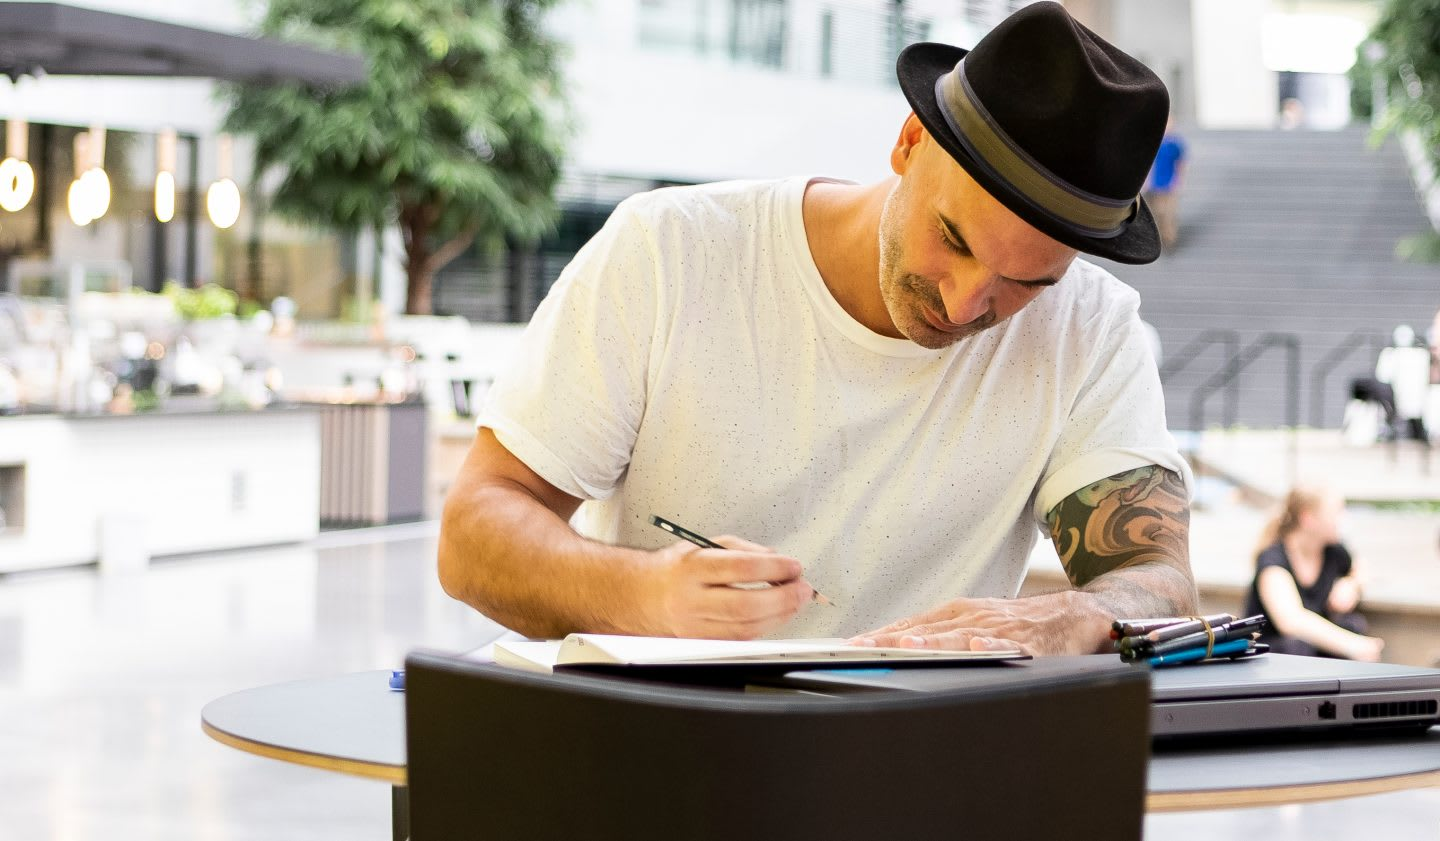 Man wearing hat and white t-shirt writing in notebook, employee, adidas, HQ, worklife